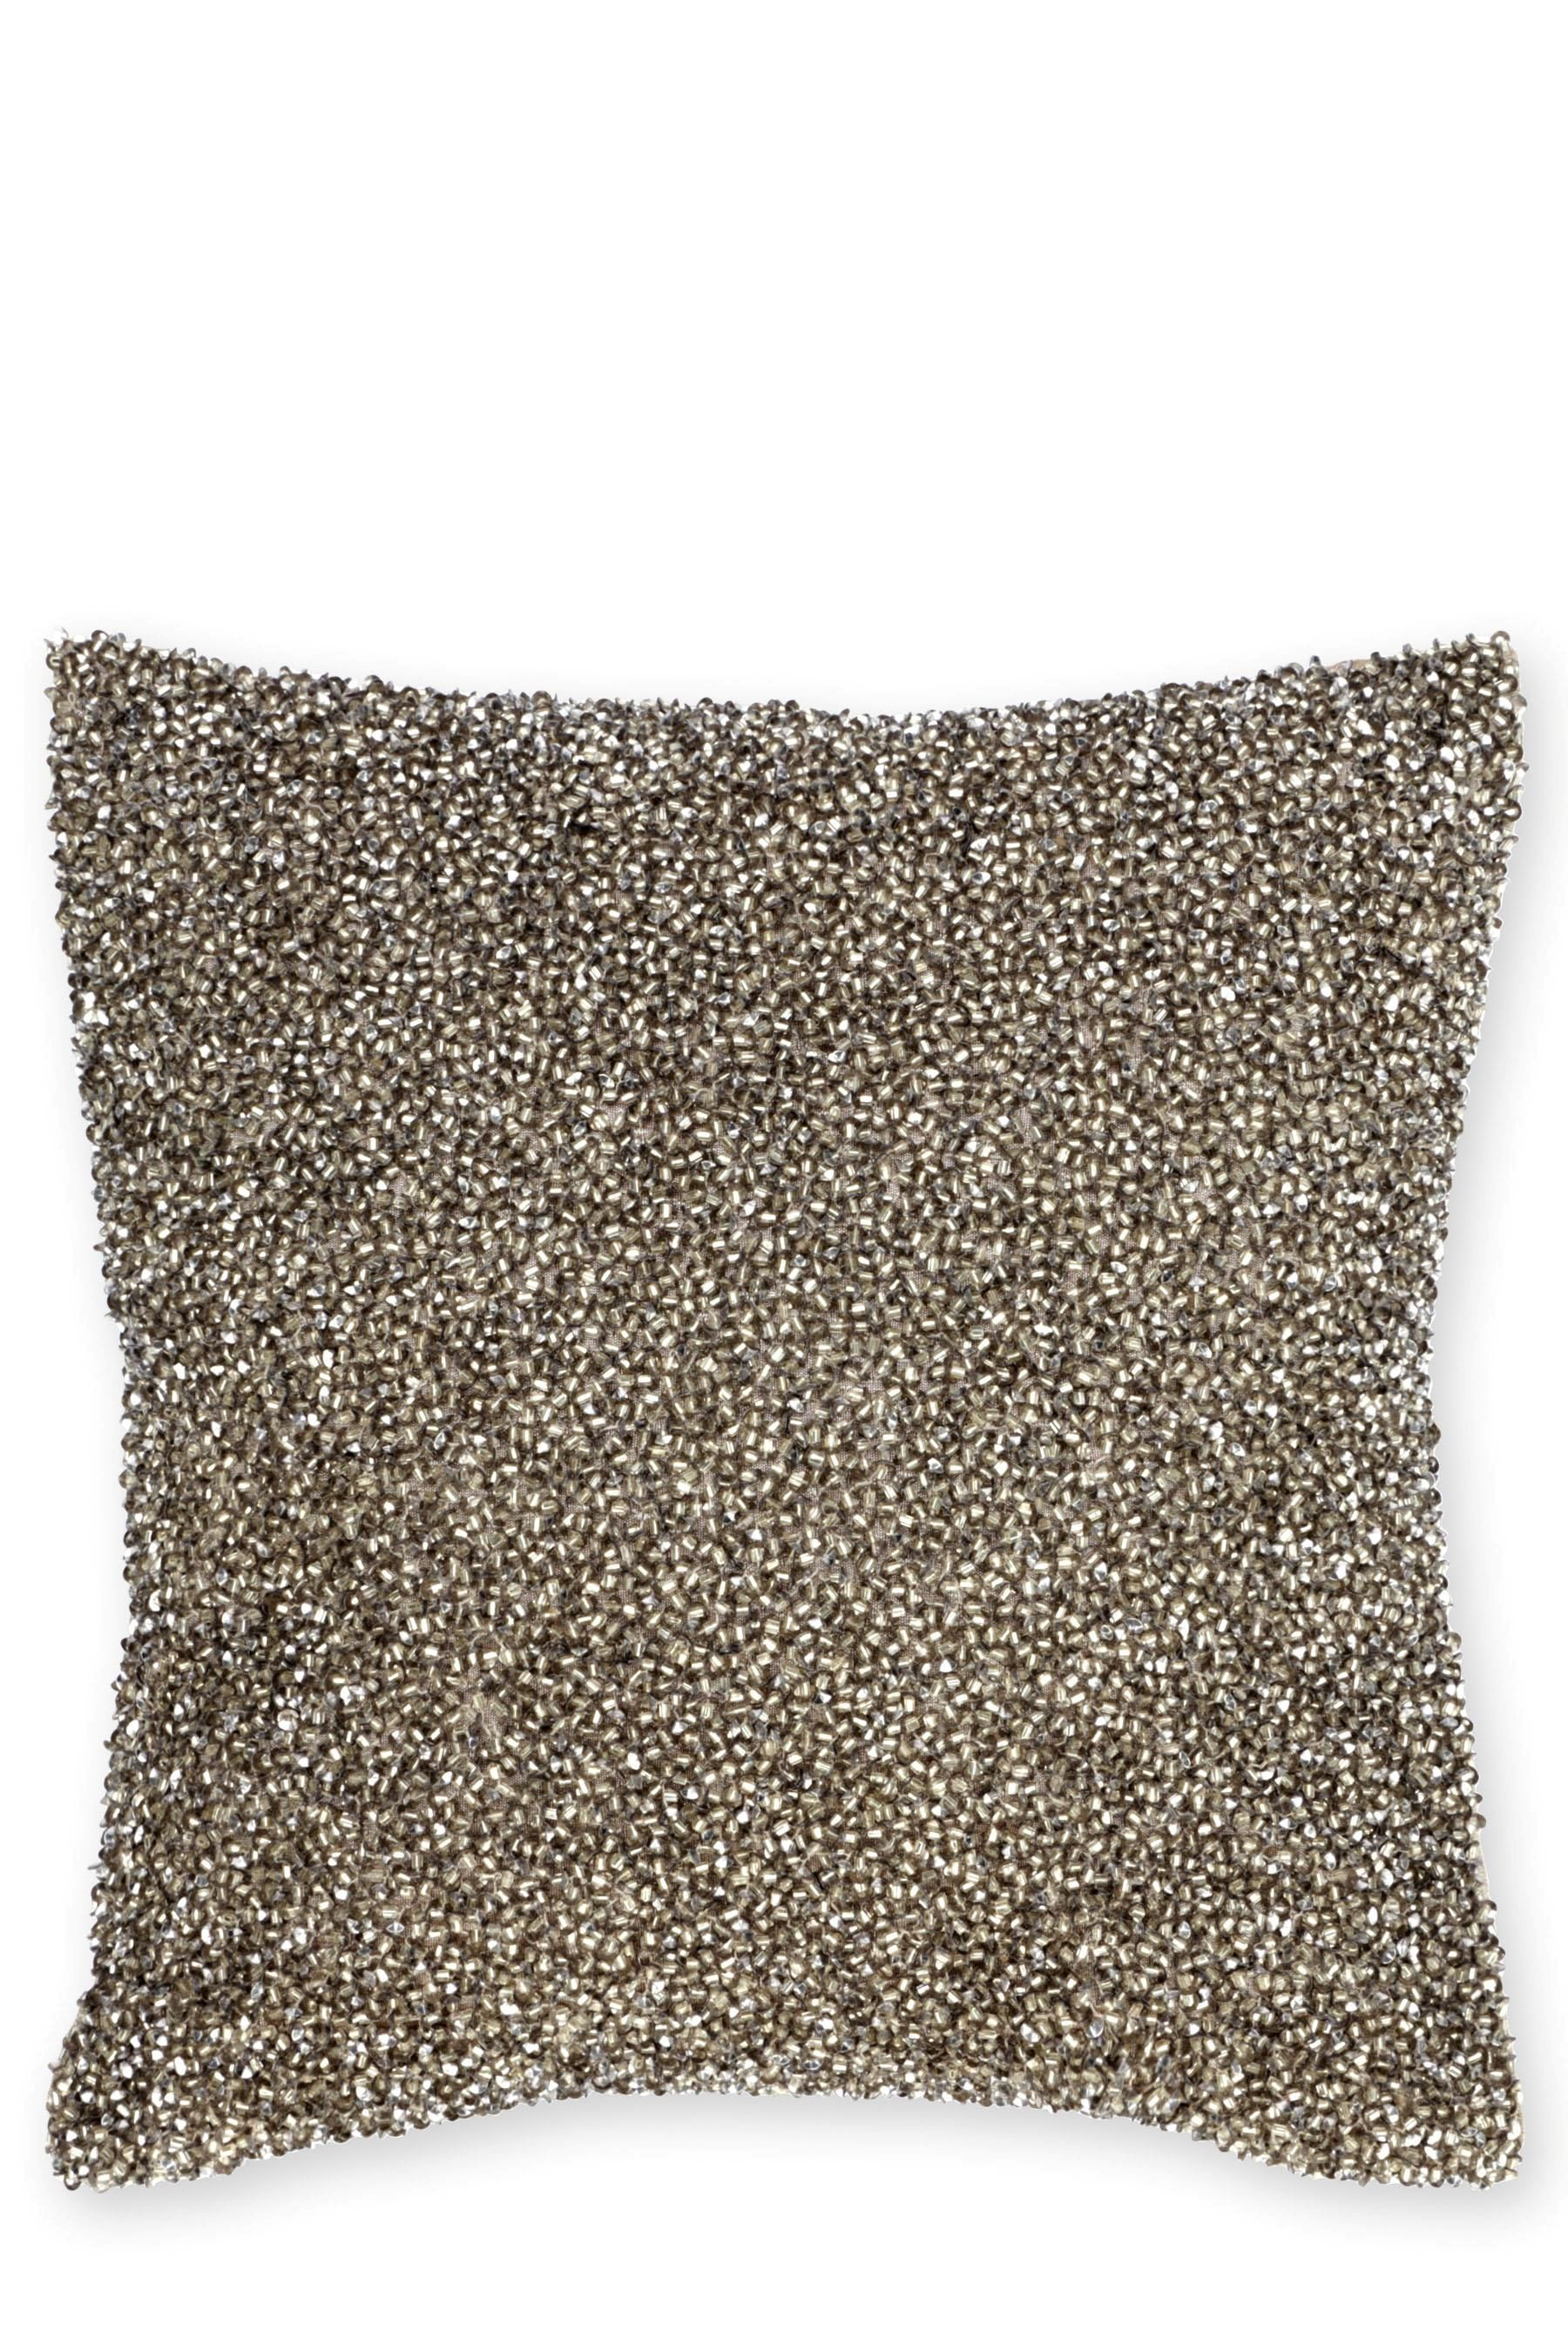 Sofa Pads Uk Ian Room And Board Buy Embellished Cushion From The Next Online Shop Ideas For